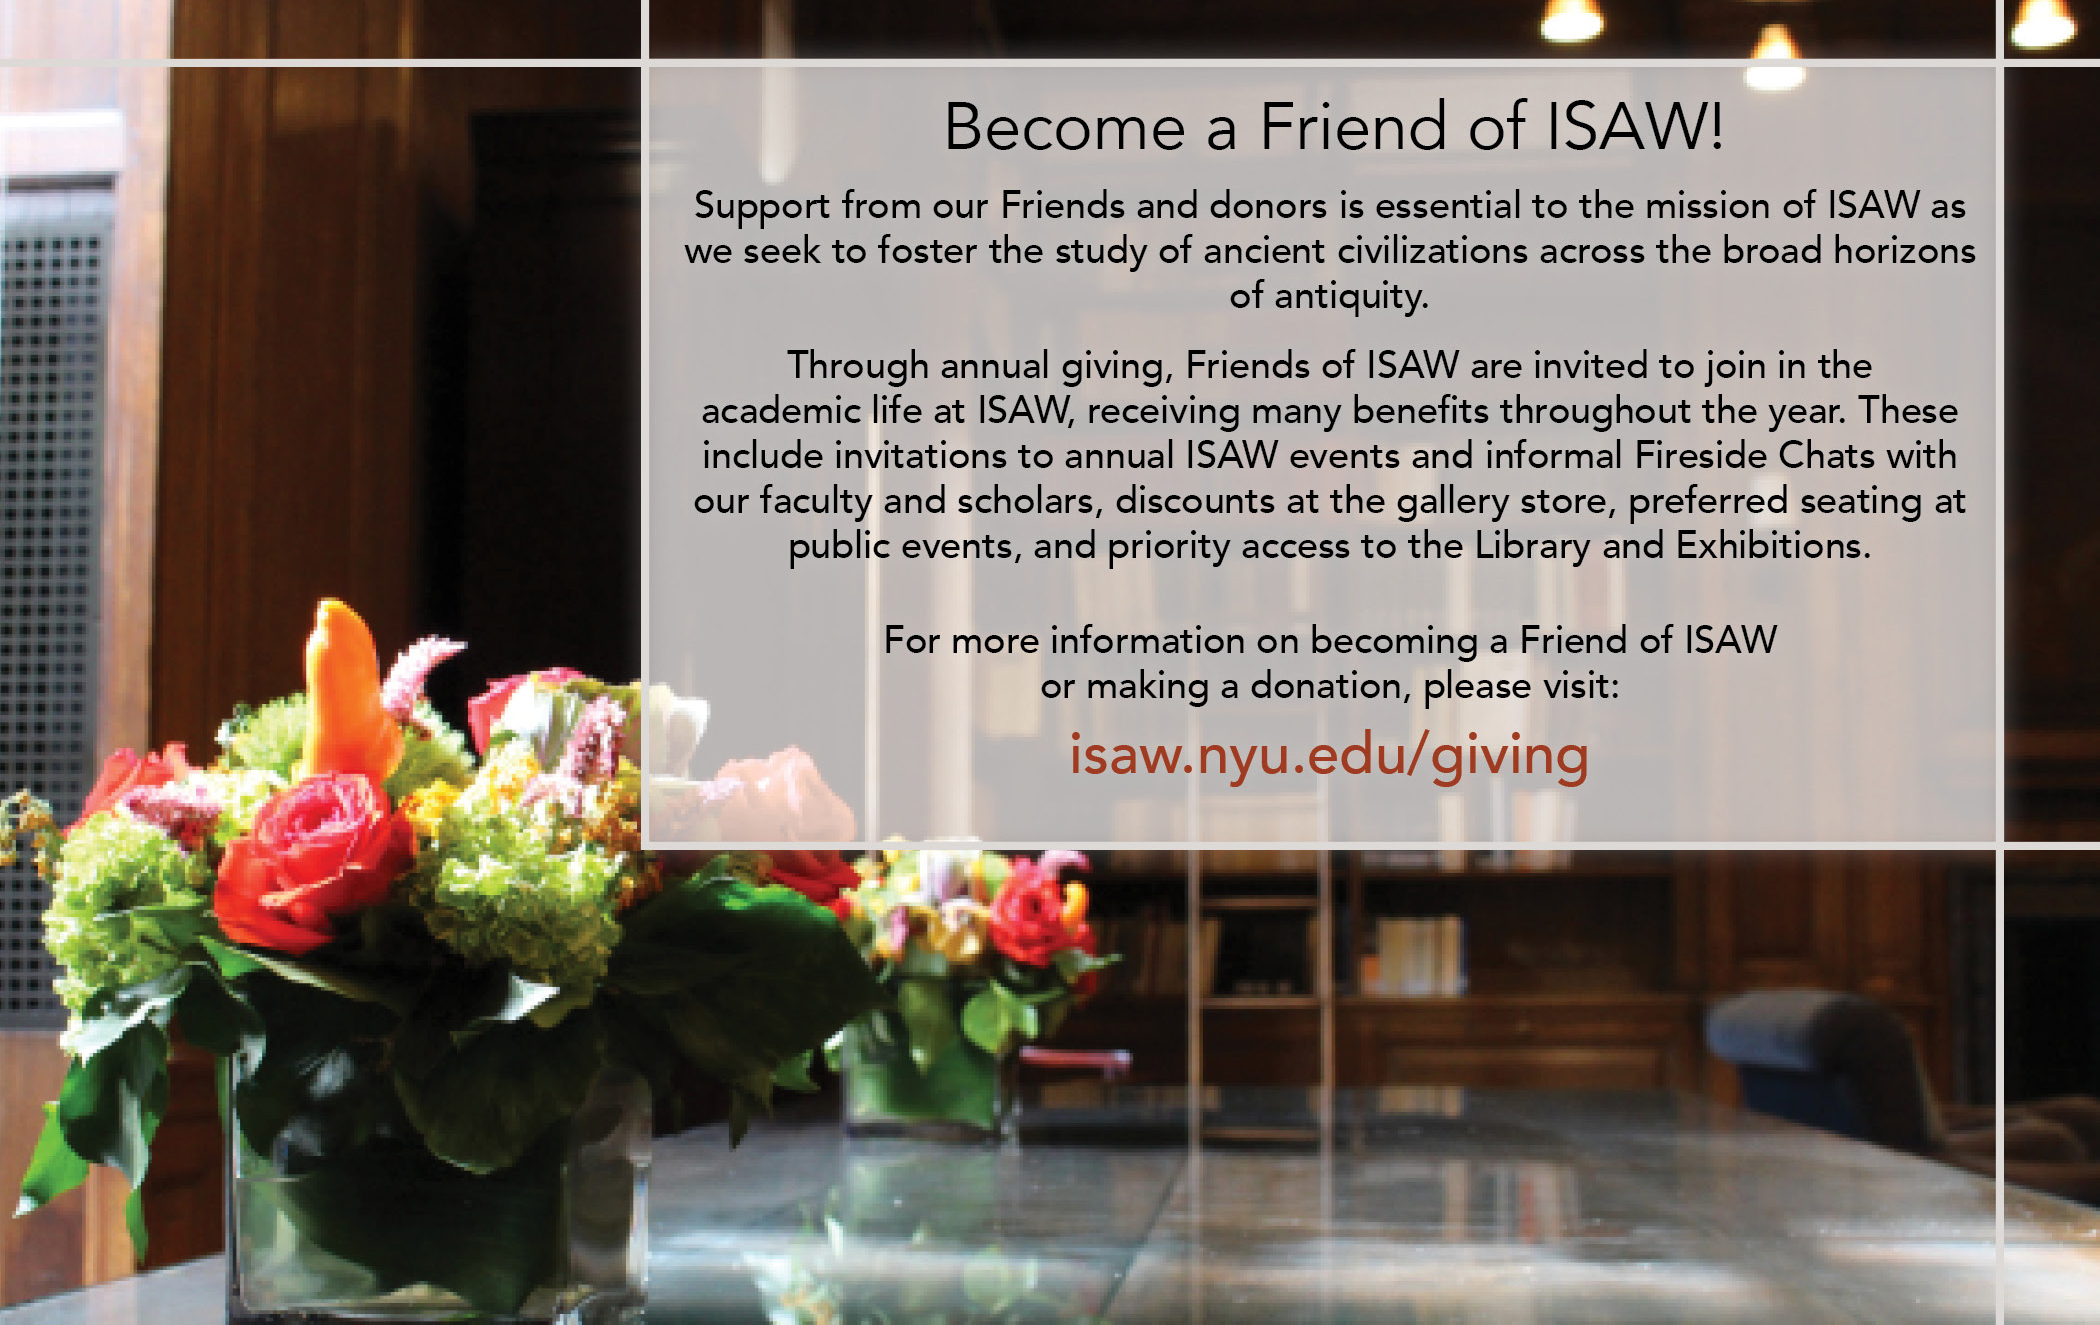 Support from our Friends and donors is essential to the mission of ISAW as we seek to foster the study of ancient civilizations across the broad horizons of antiquity.   Through annual giving, Friends of ISAW are invited to join in the  academic life at ISAW, receiving many benefits throughout the year. These include discounts at the gallery store, preferred seating at public events,  a special invitation to join the ISAW community for tea and coffee service, invitations to annual ISAW events and informal Fireside Chats with our  faculty and scholars, as well as priority access to the Library and Exhibitions.   For more information on becoming a Friend of ISAW  or making a donation, please visit:  isaw.nyu.edu/giving